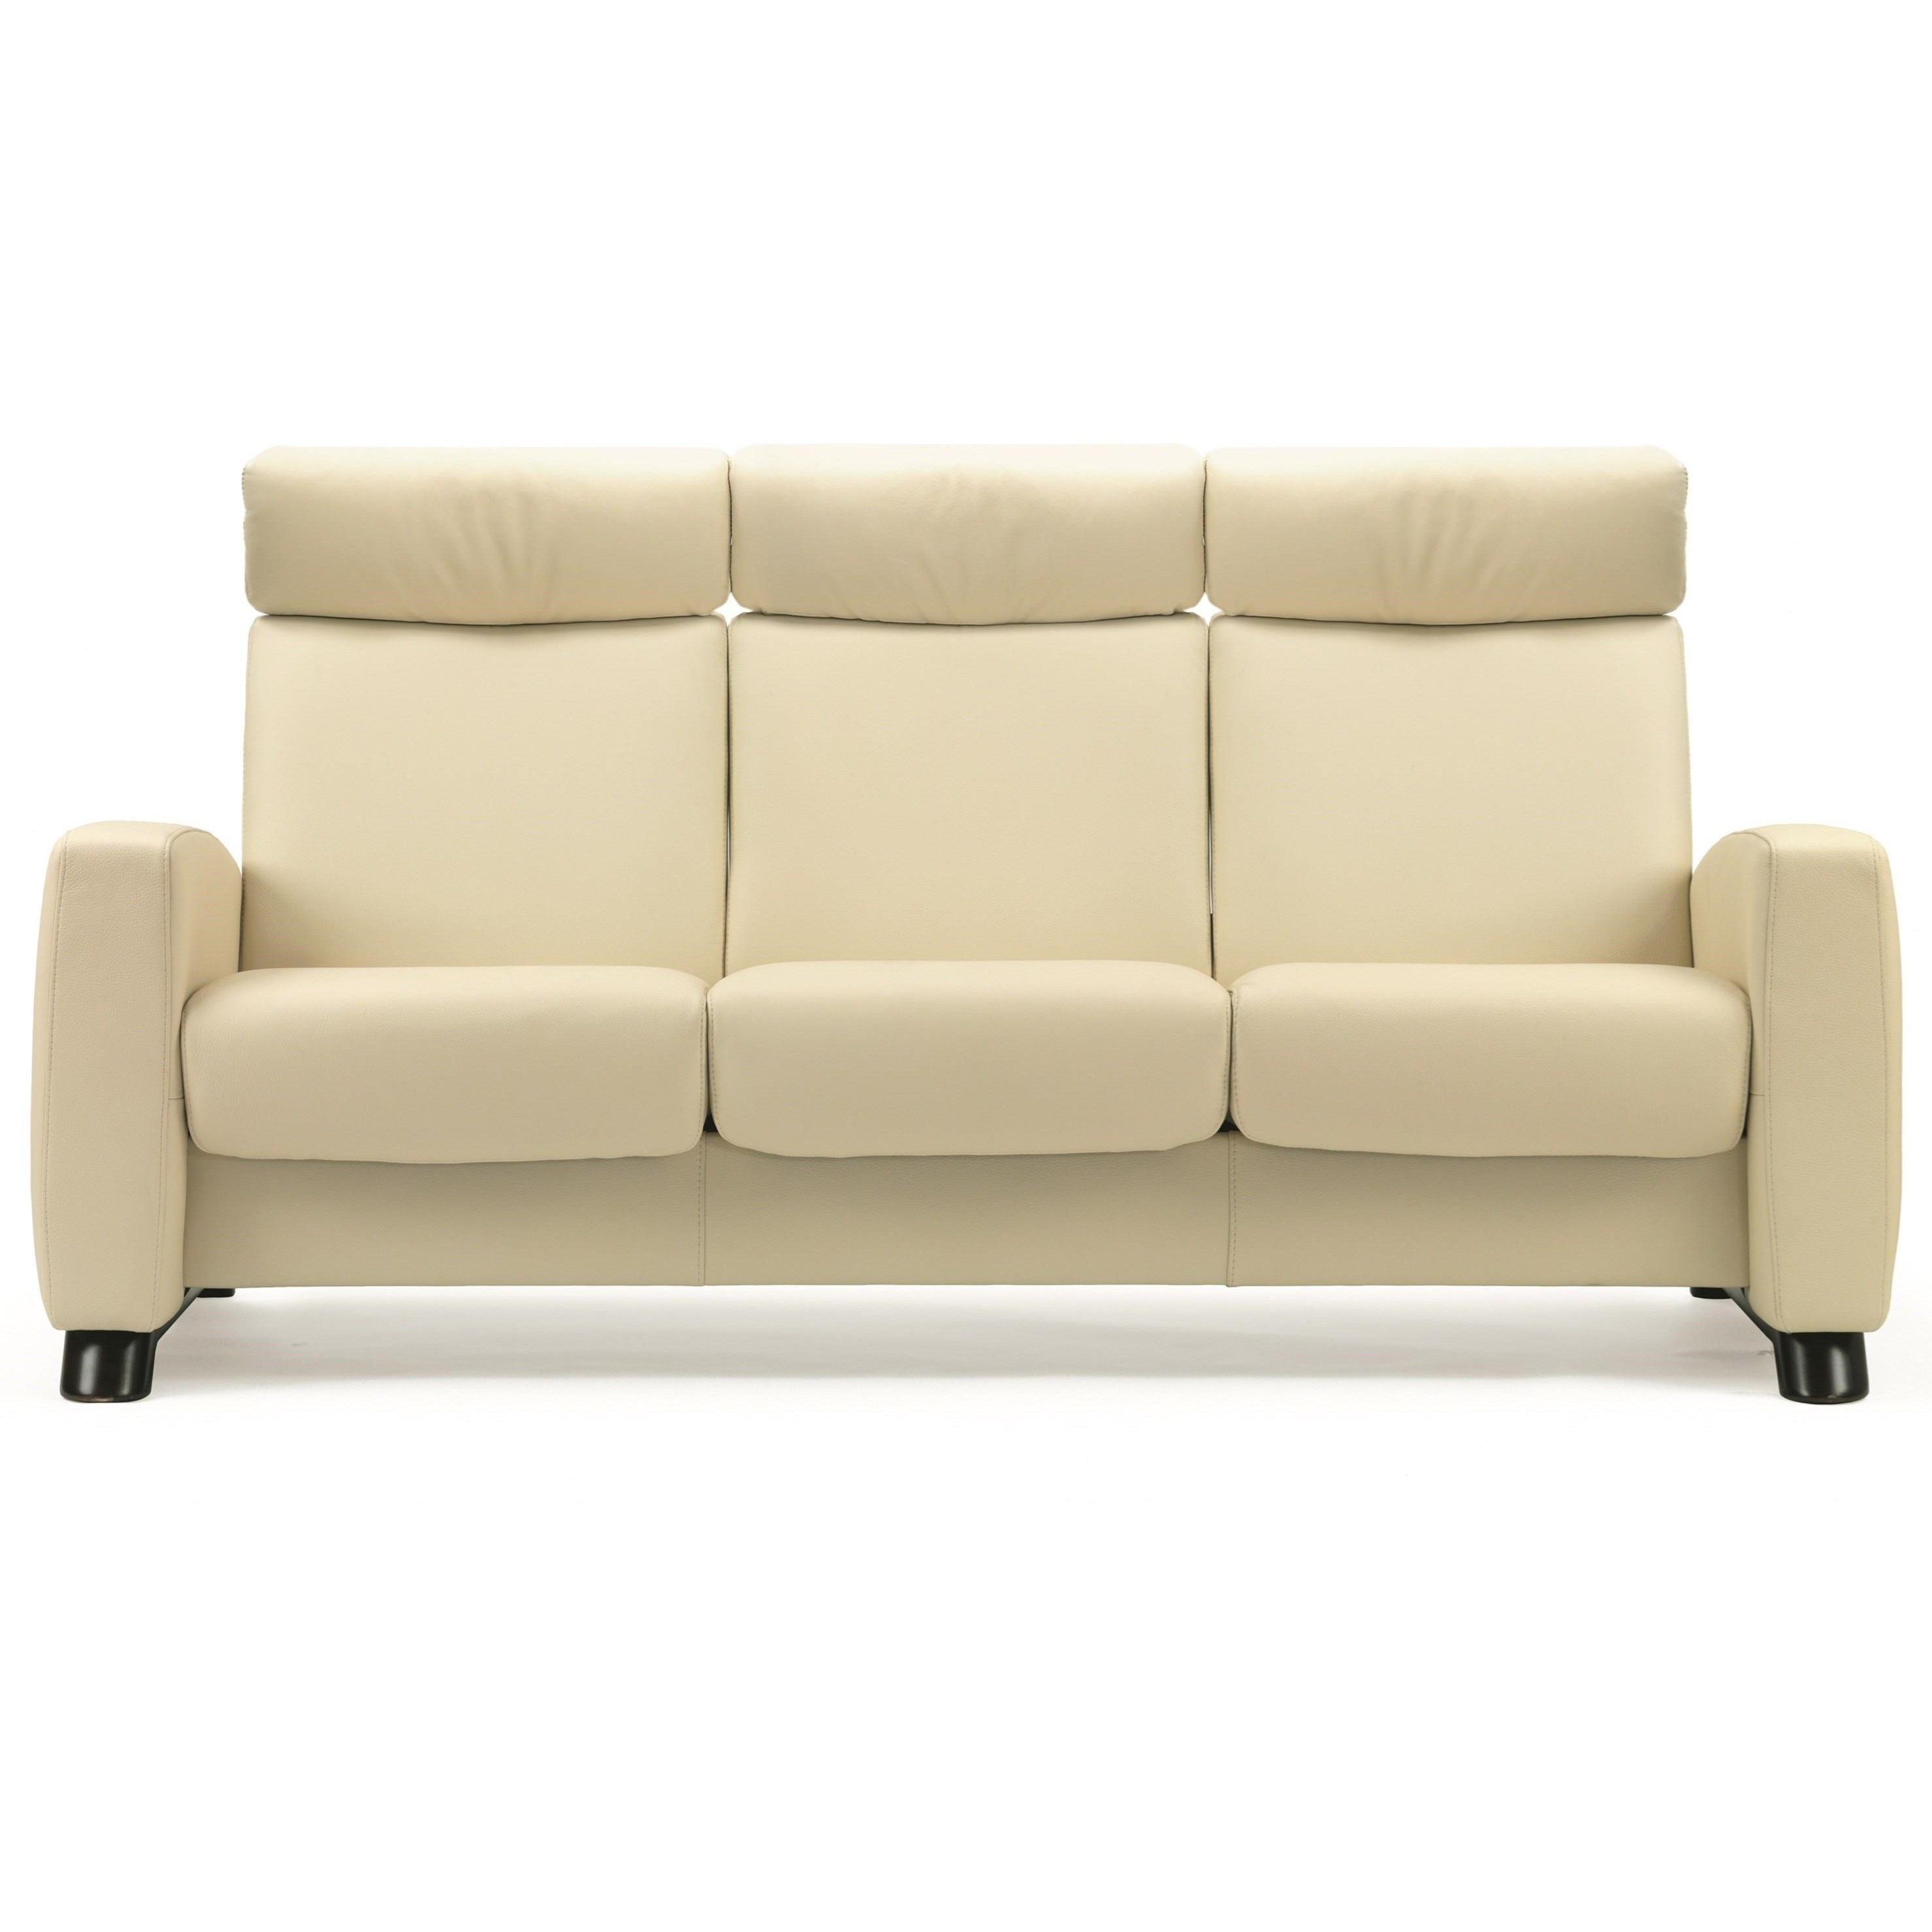 Arion 19 - A10 High-Back Reclining Sofa by Stressless at Bennett's Furniture and Mattresses